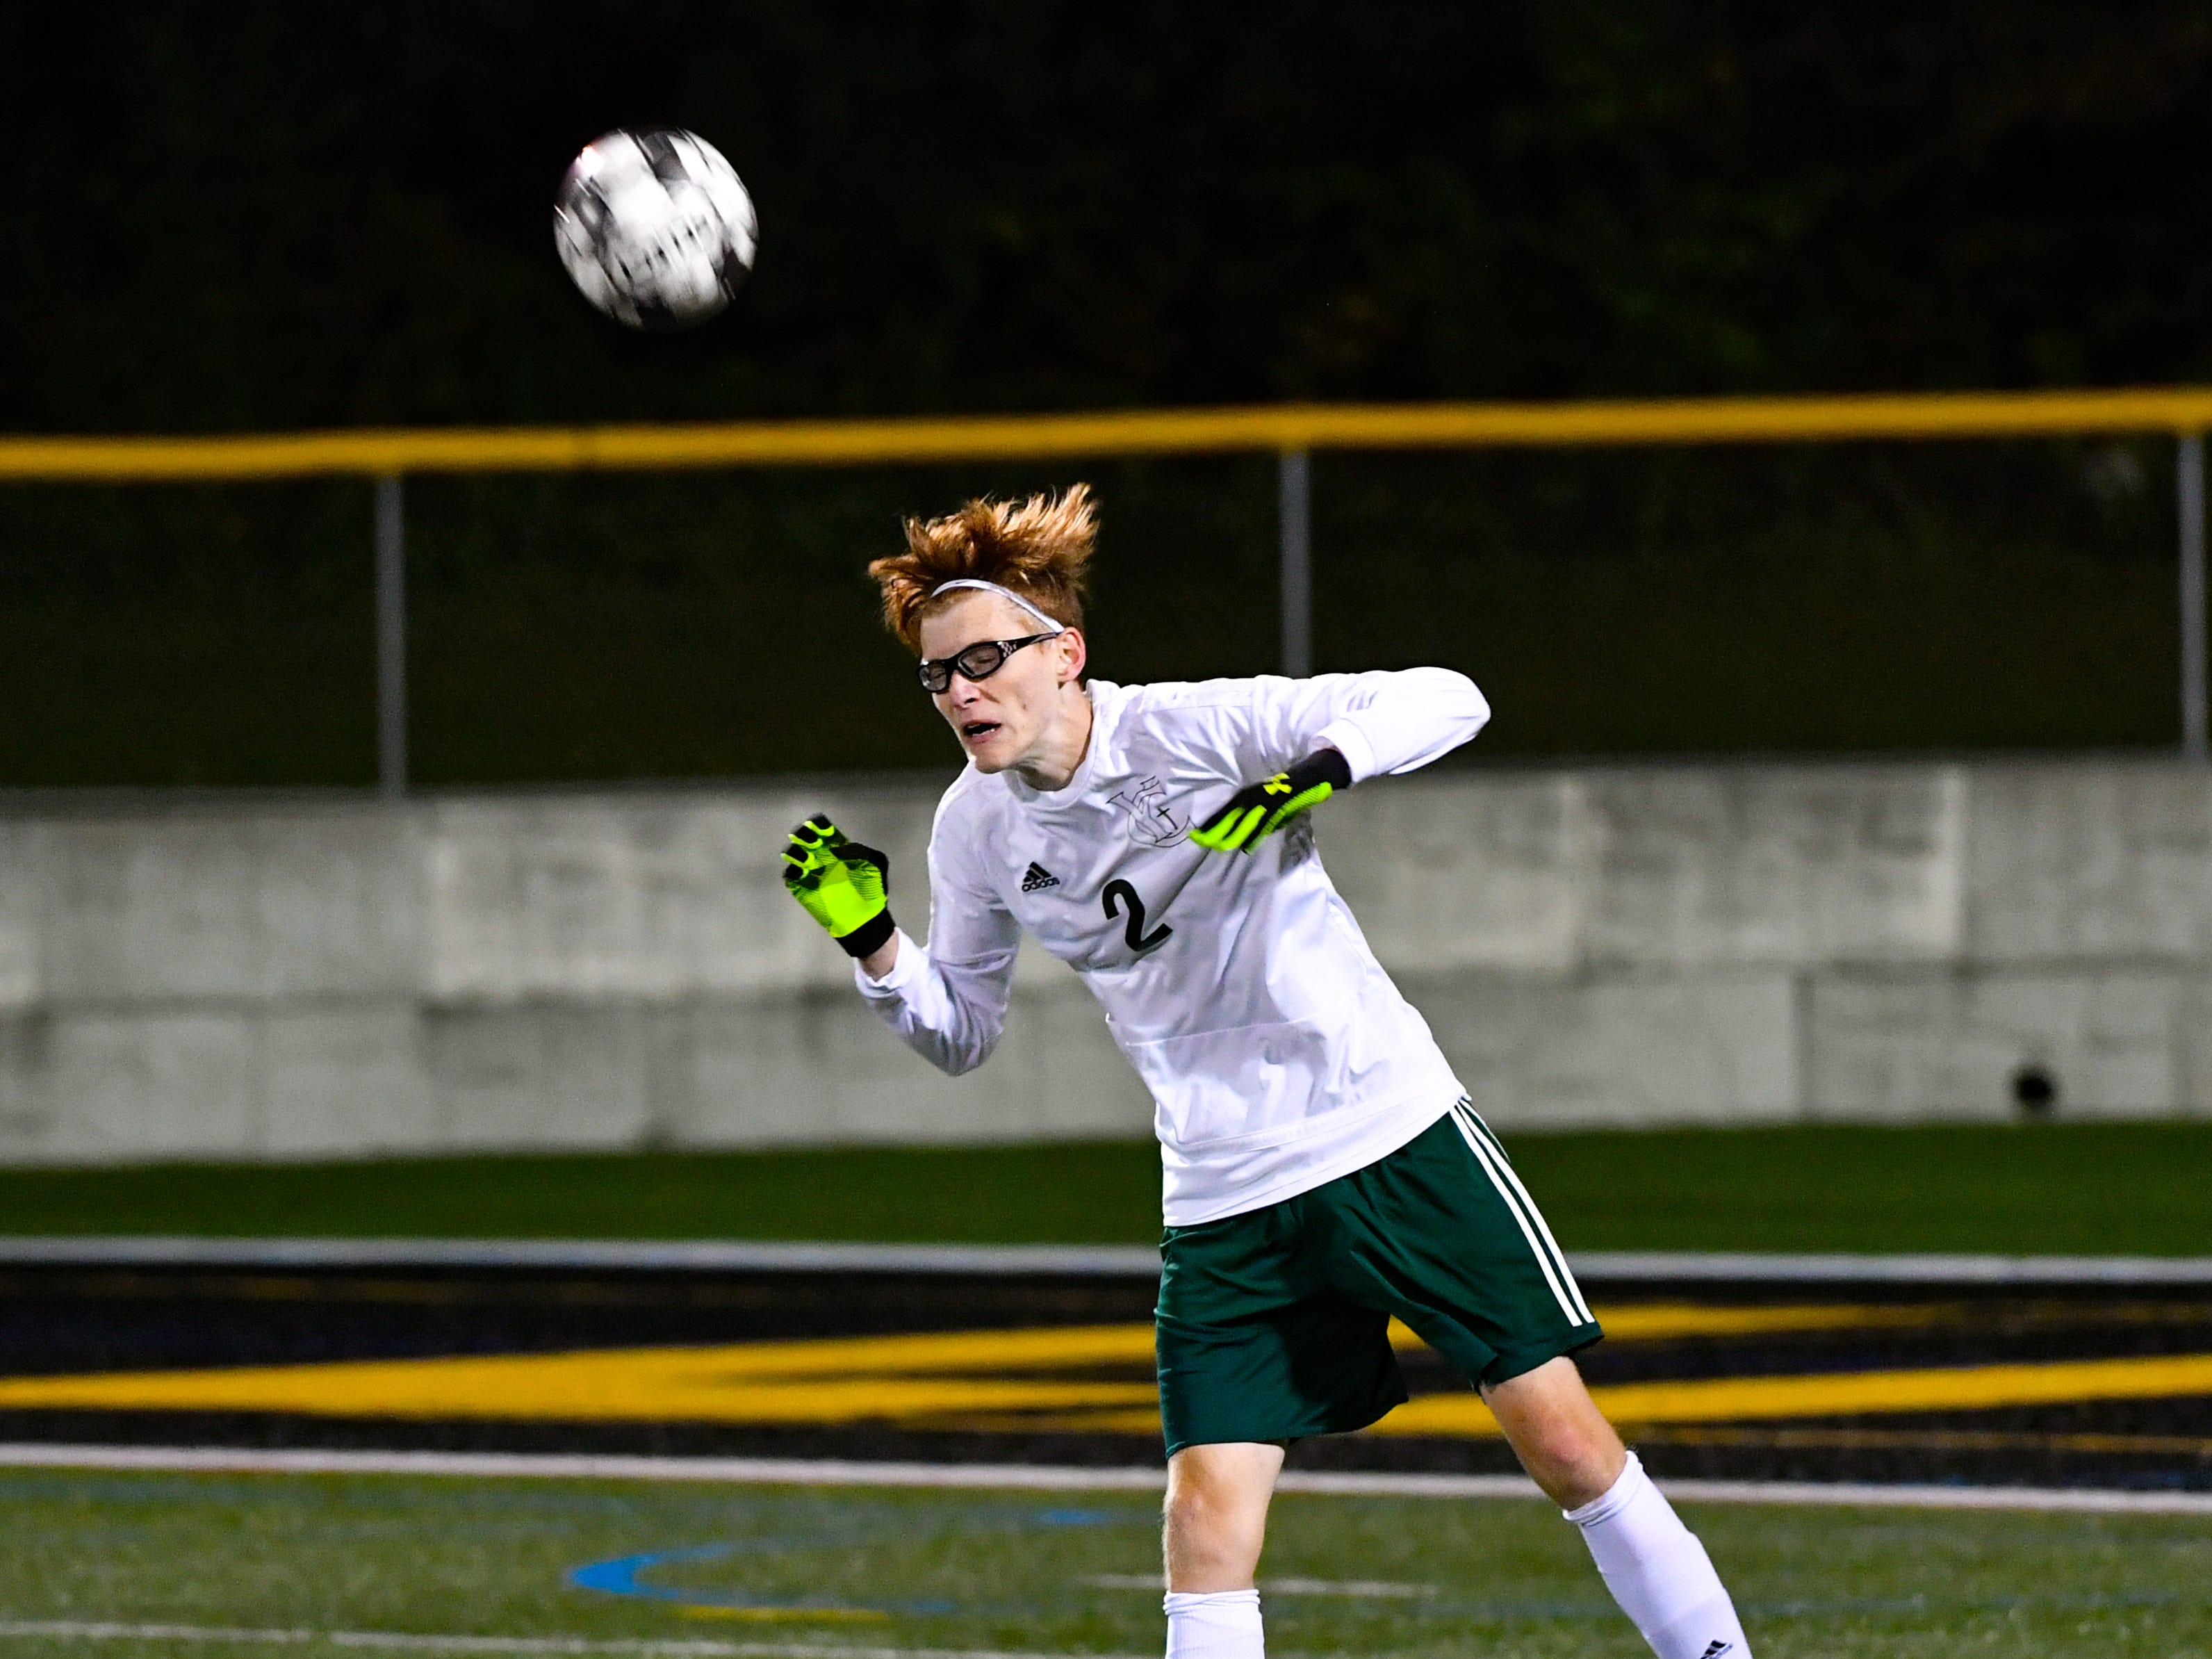 Phillip Jahn (2) sends a header up field during the boys soccer game between South Western and York Catholic, October 16, 2018. The Mustangs beat the Irish 2-1.